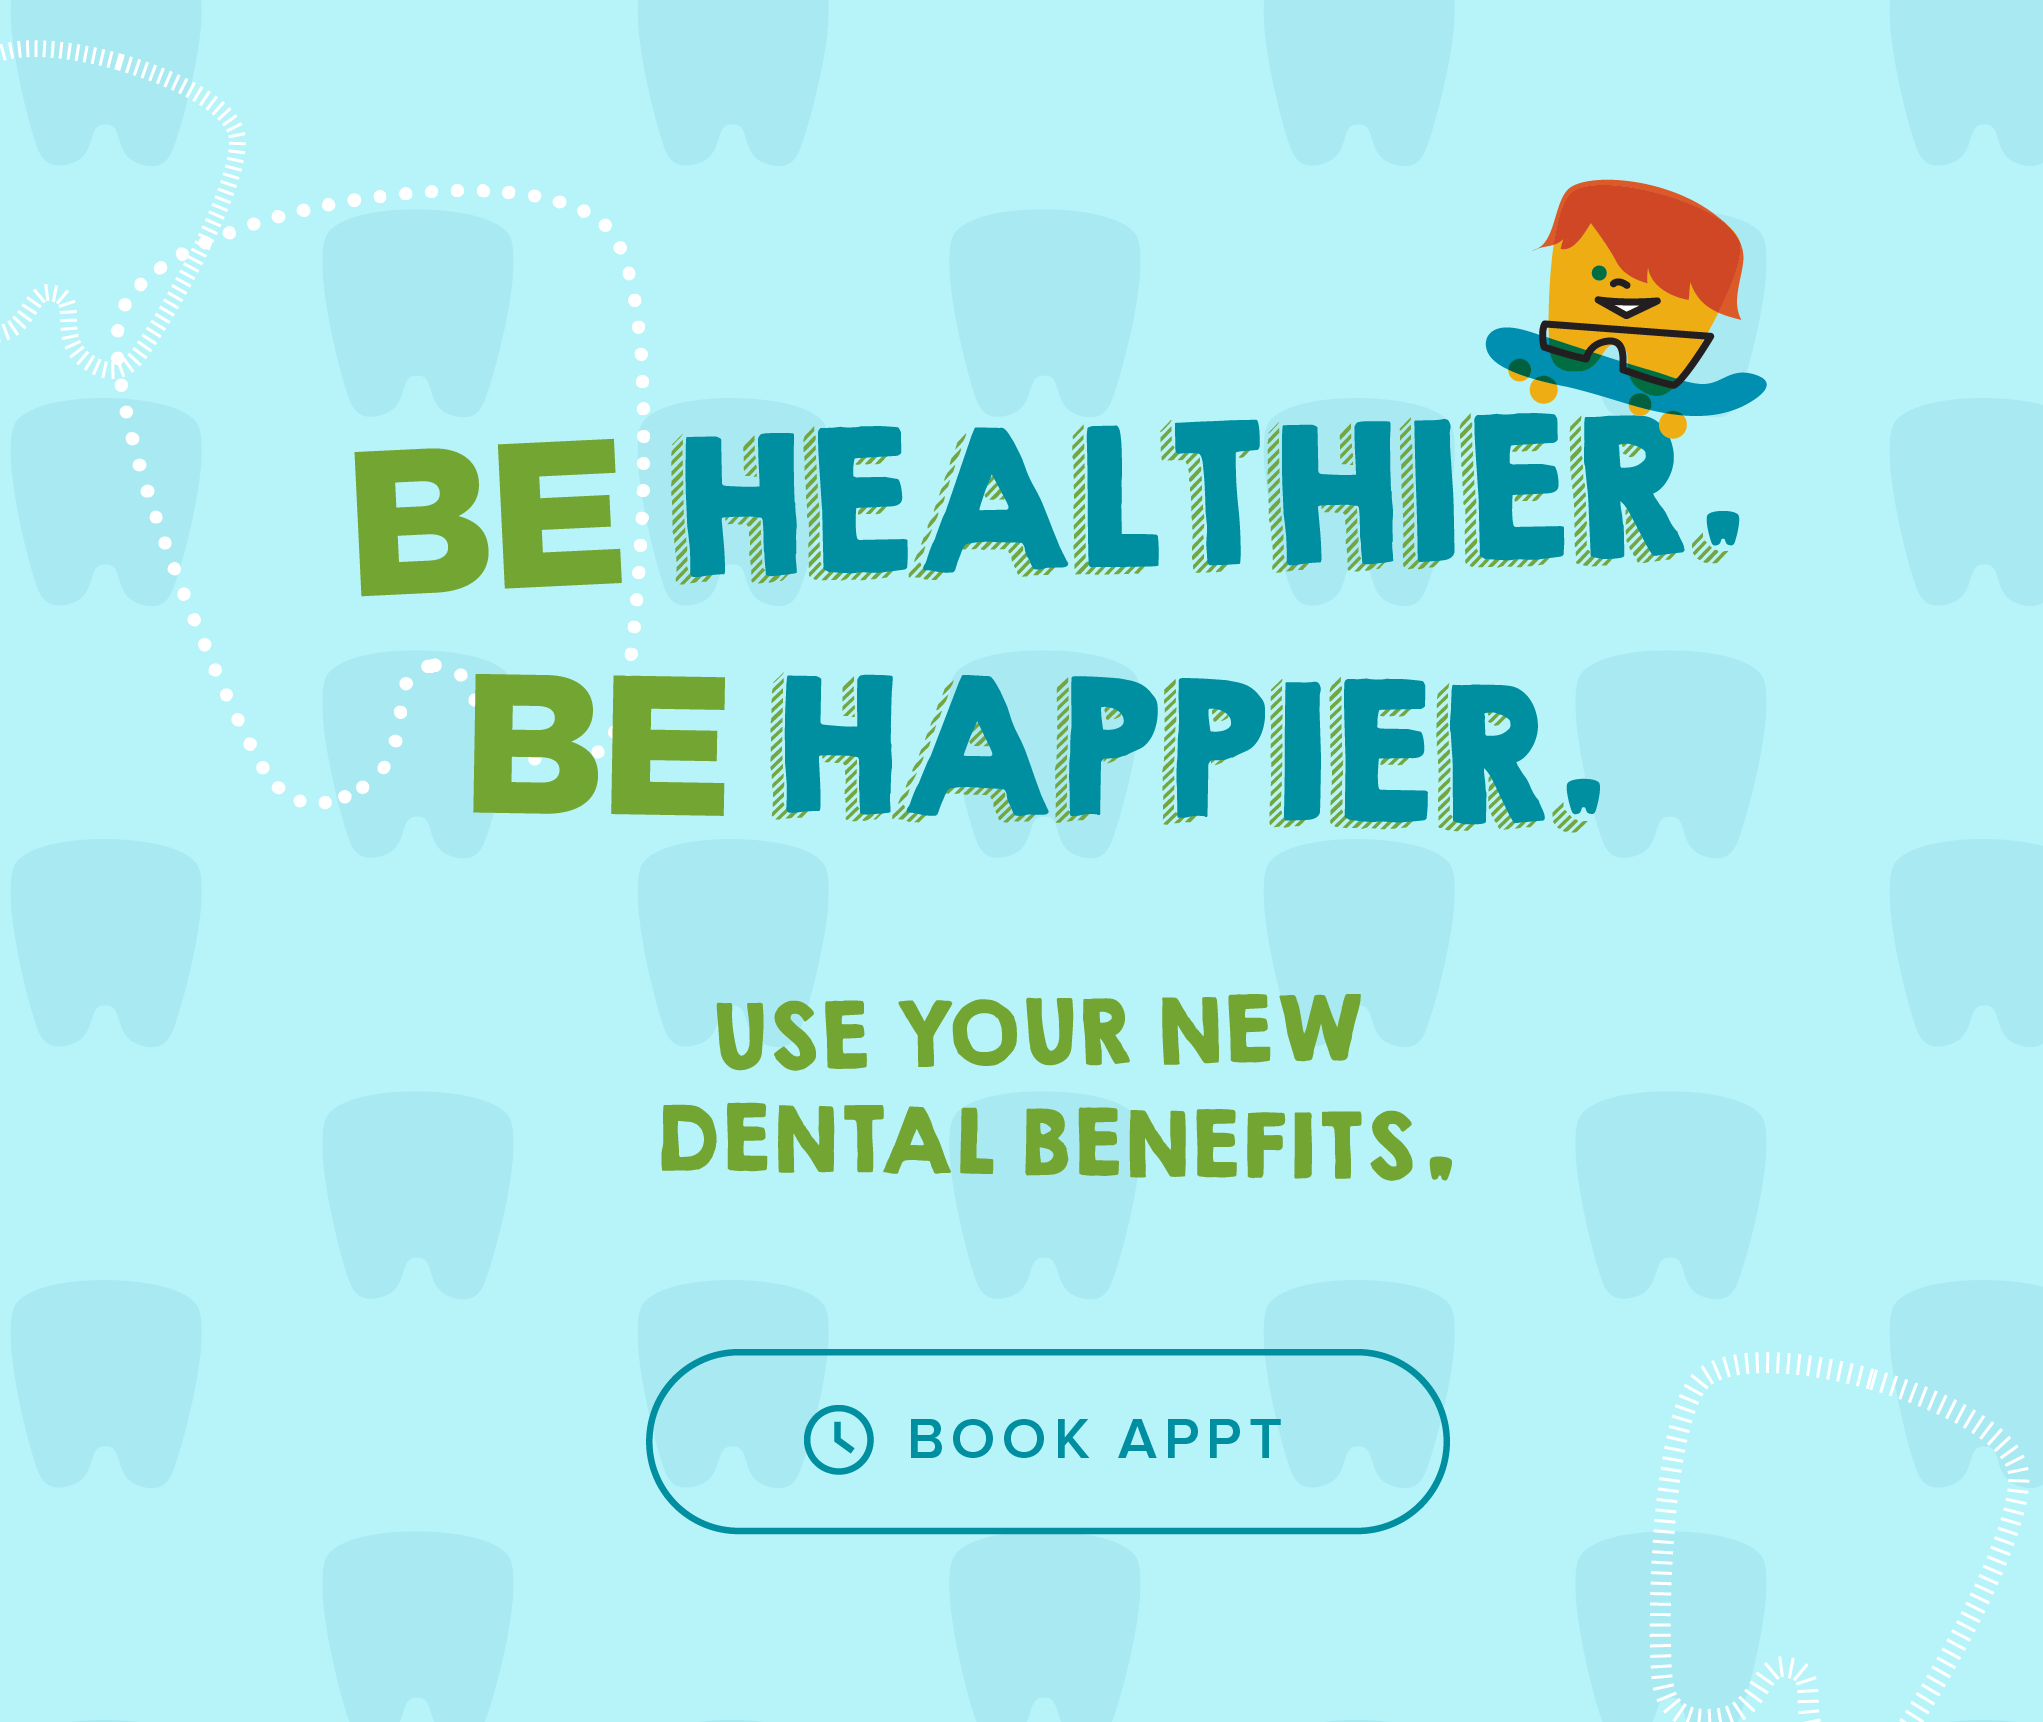 Be Healthier. Be Happier. Use your new dental benefits. - Henderson Kids' Dentistry & Orthodontics